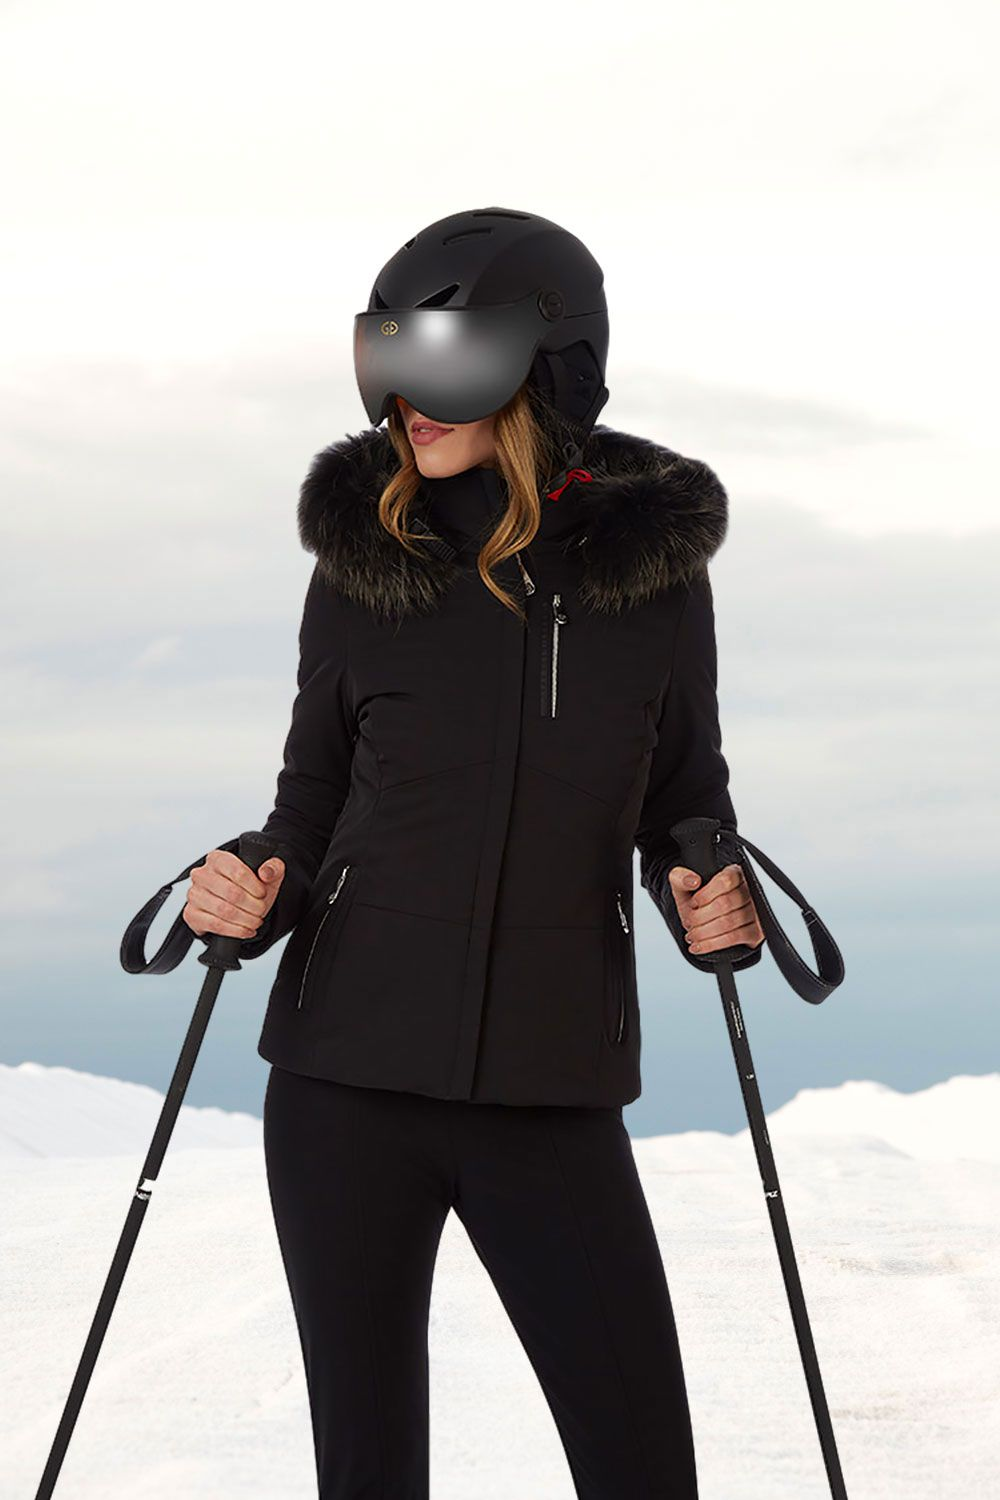 Black ski wear from Poivre Blanc